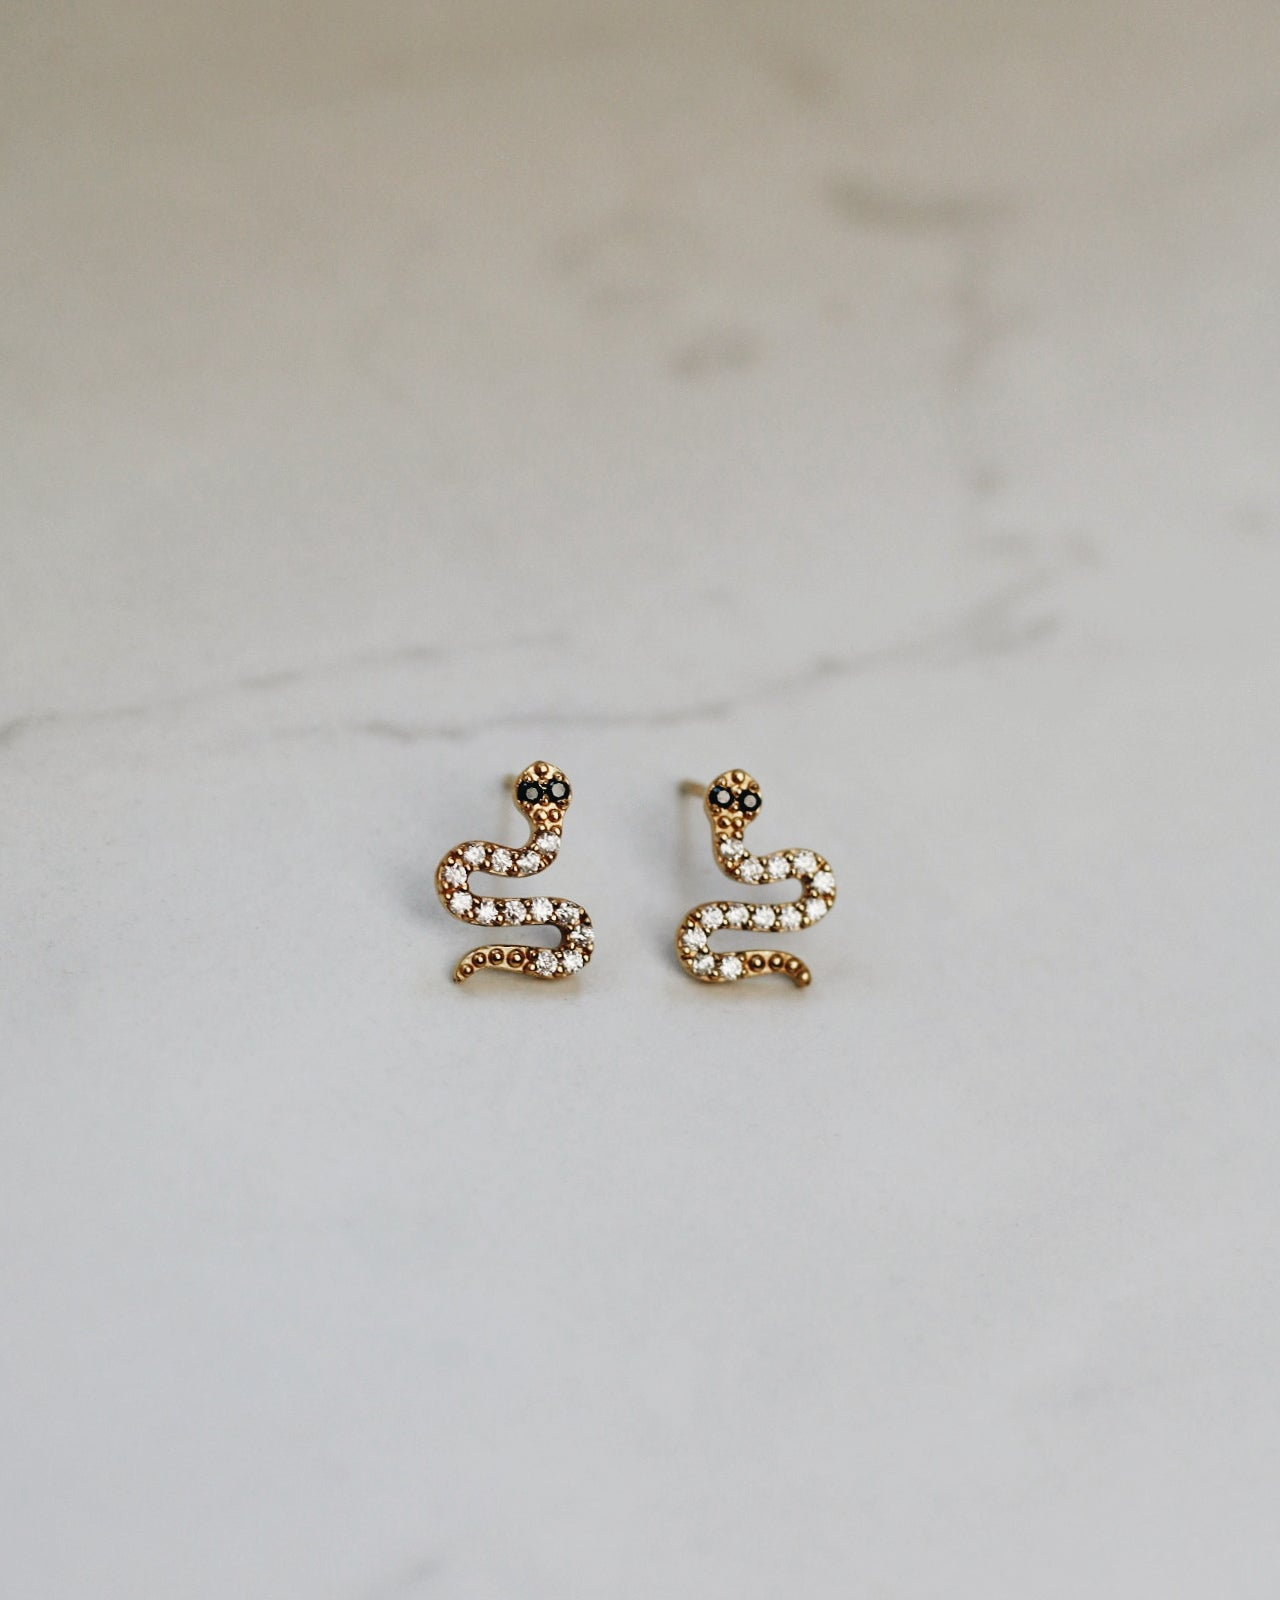 Gold Vermeil Snake Earrings - Cubic Zirconia